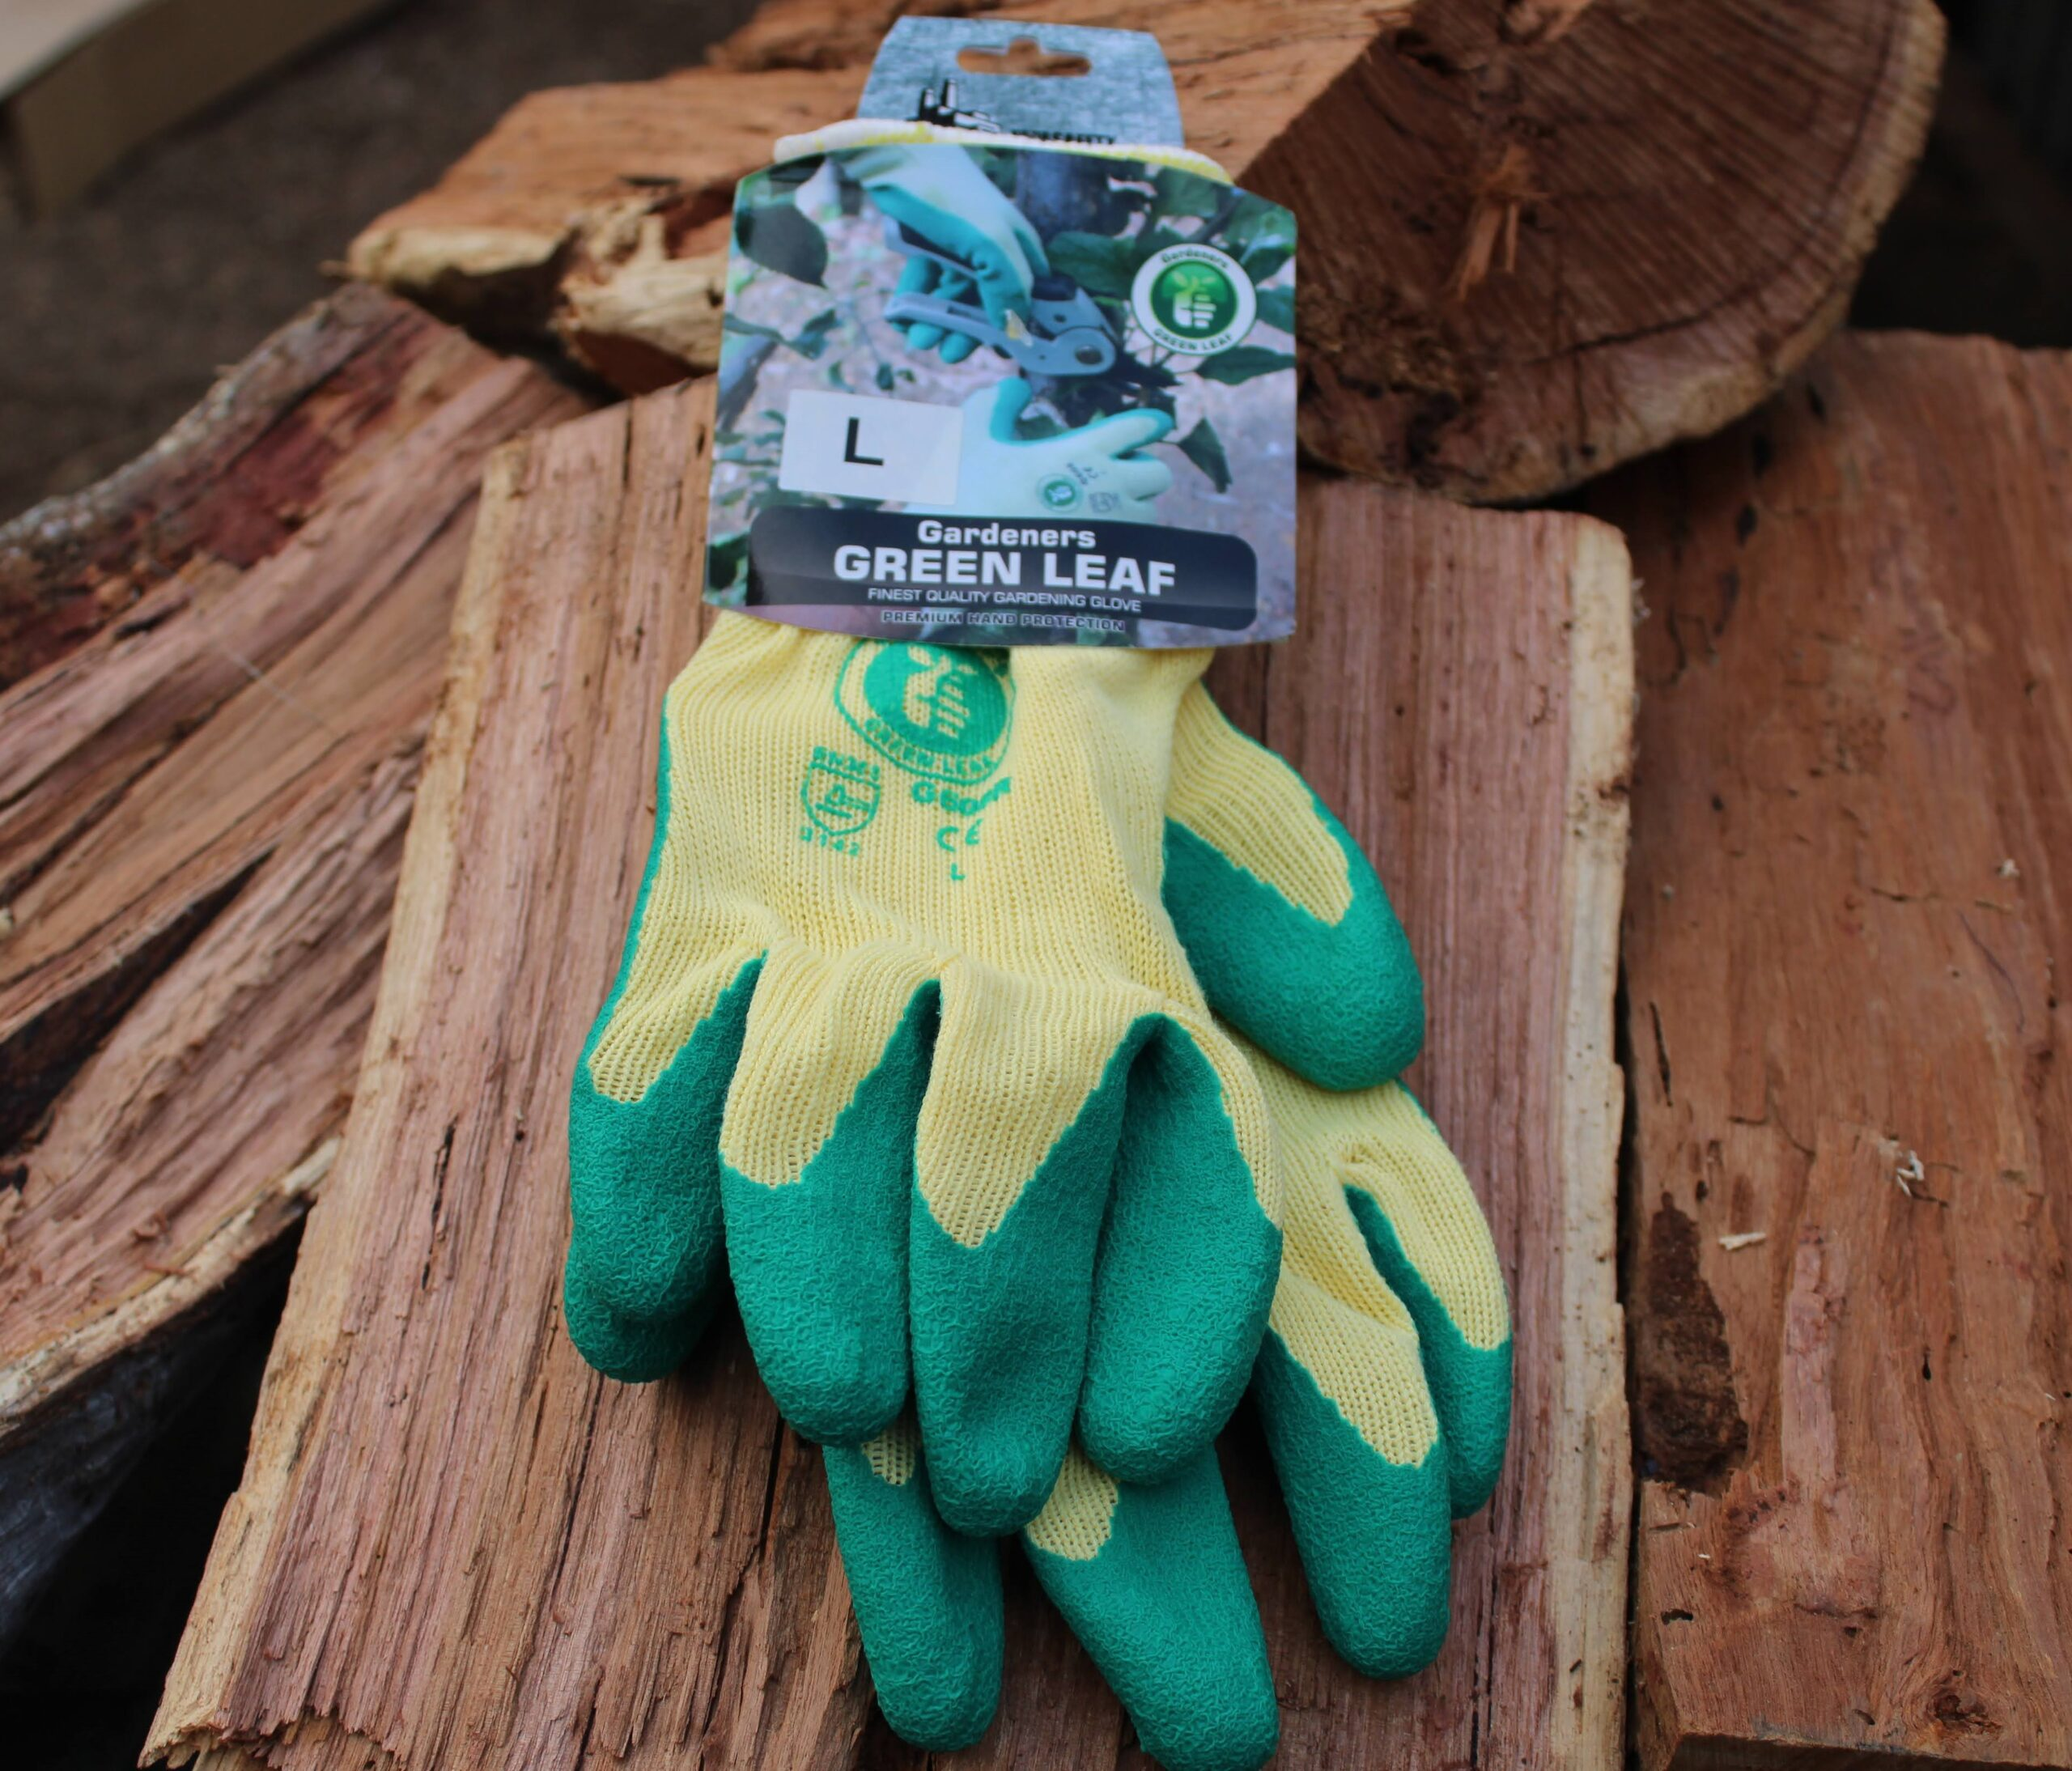 Green Leaf Gardening gloves on a wood stack